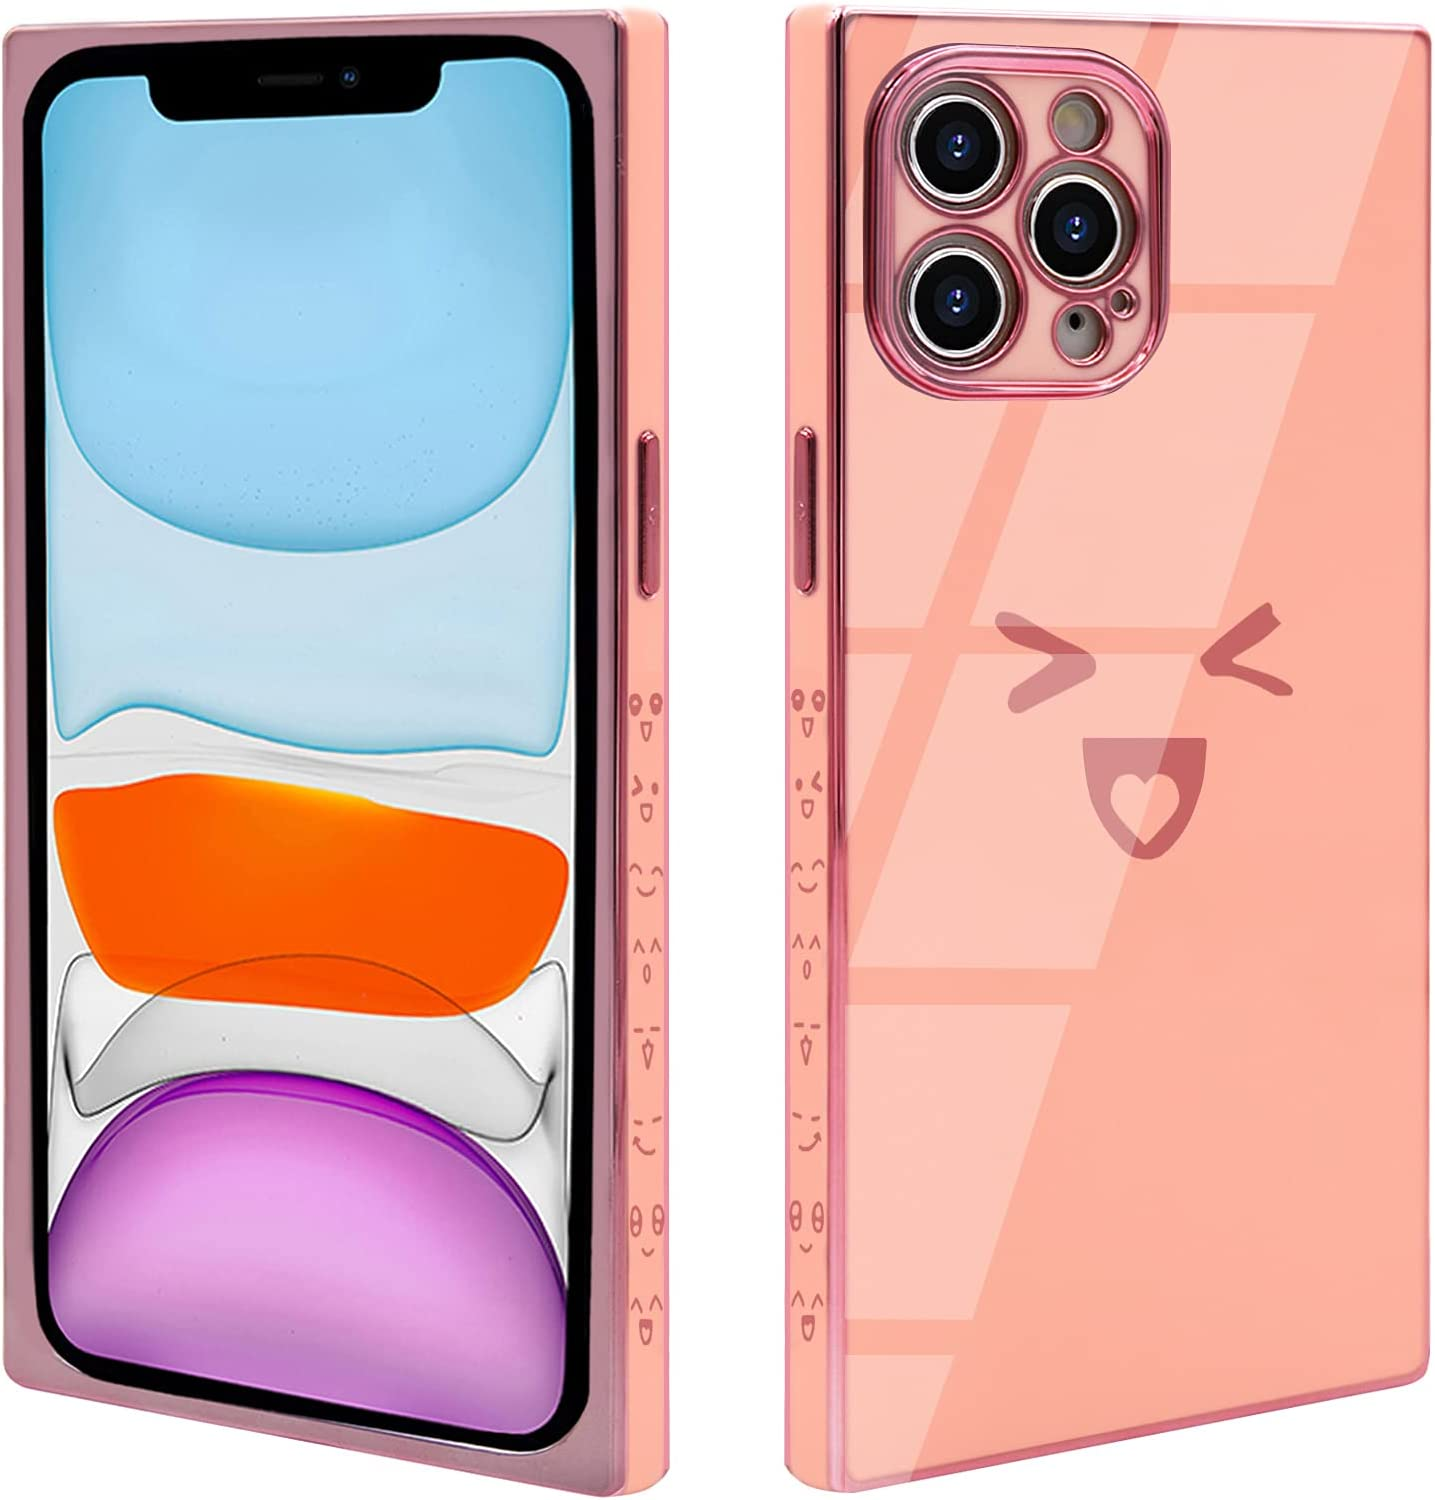 VUIIMEEK Square Case for iPhone 12 Pro Max for Women Girls 6.7